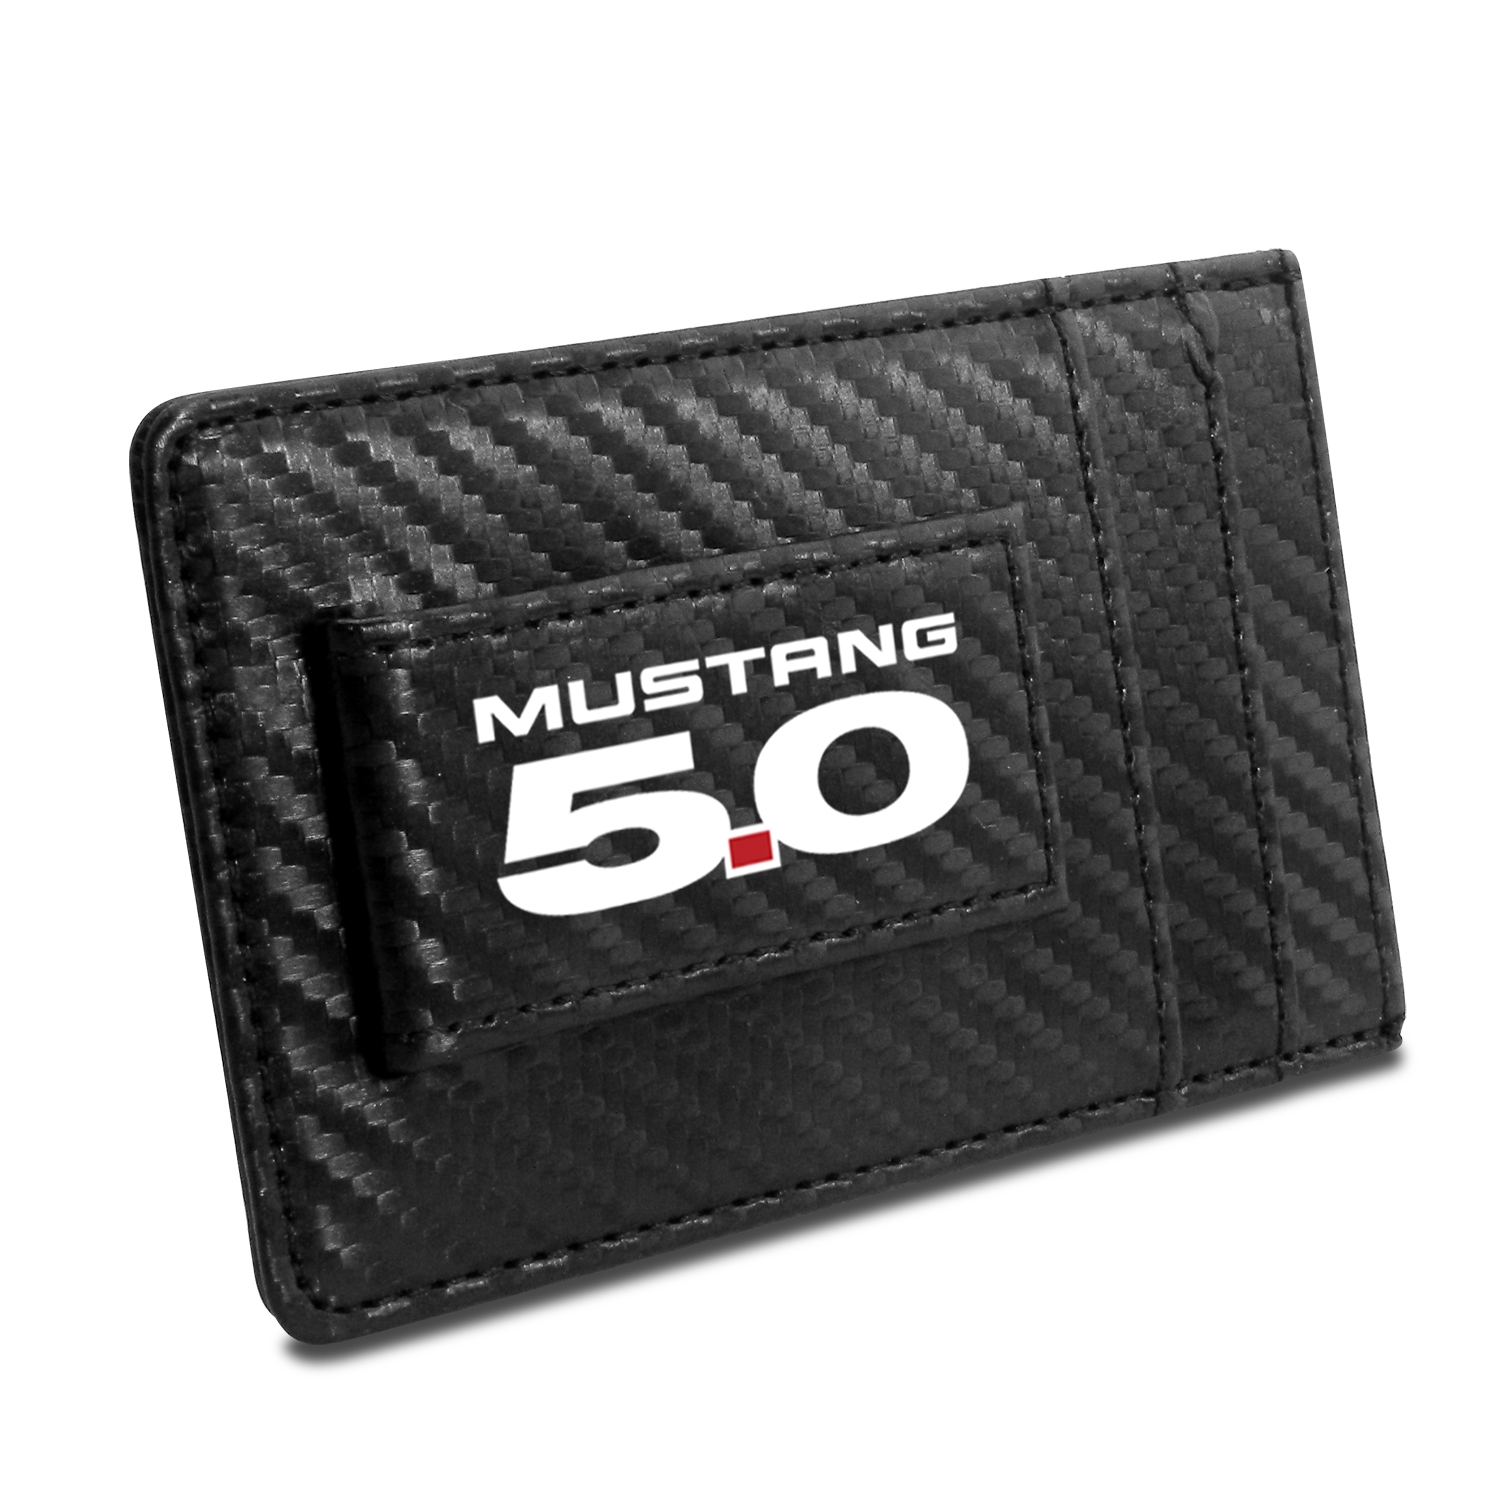 Ford Mustang 5.0 Black Carbon Fiber RFID Card Holder Wallet